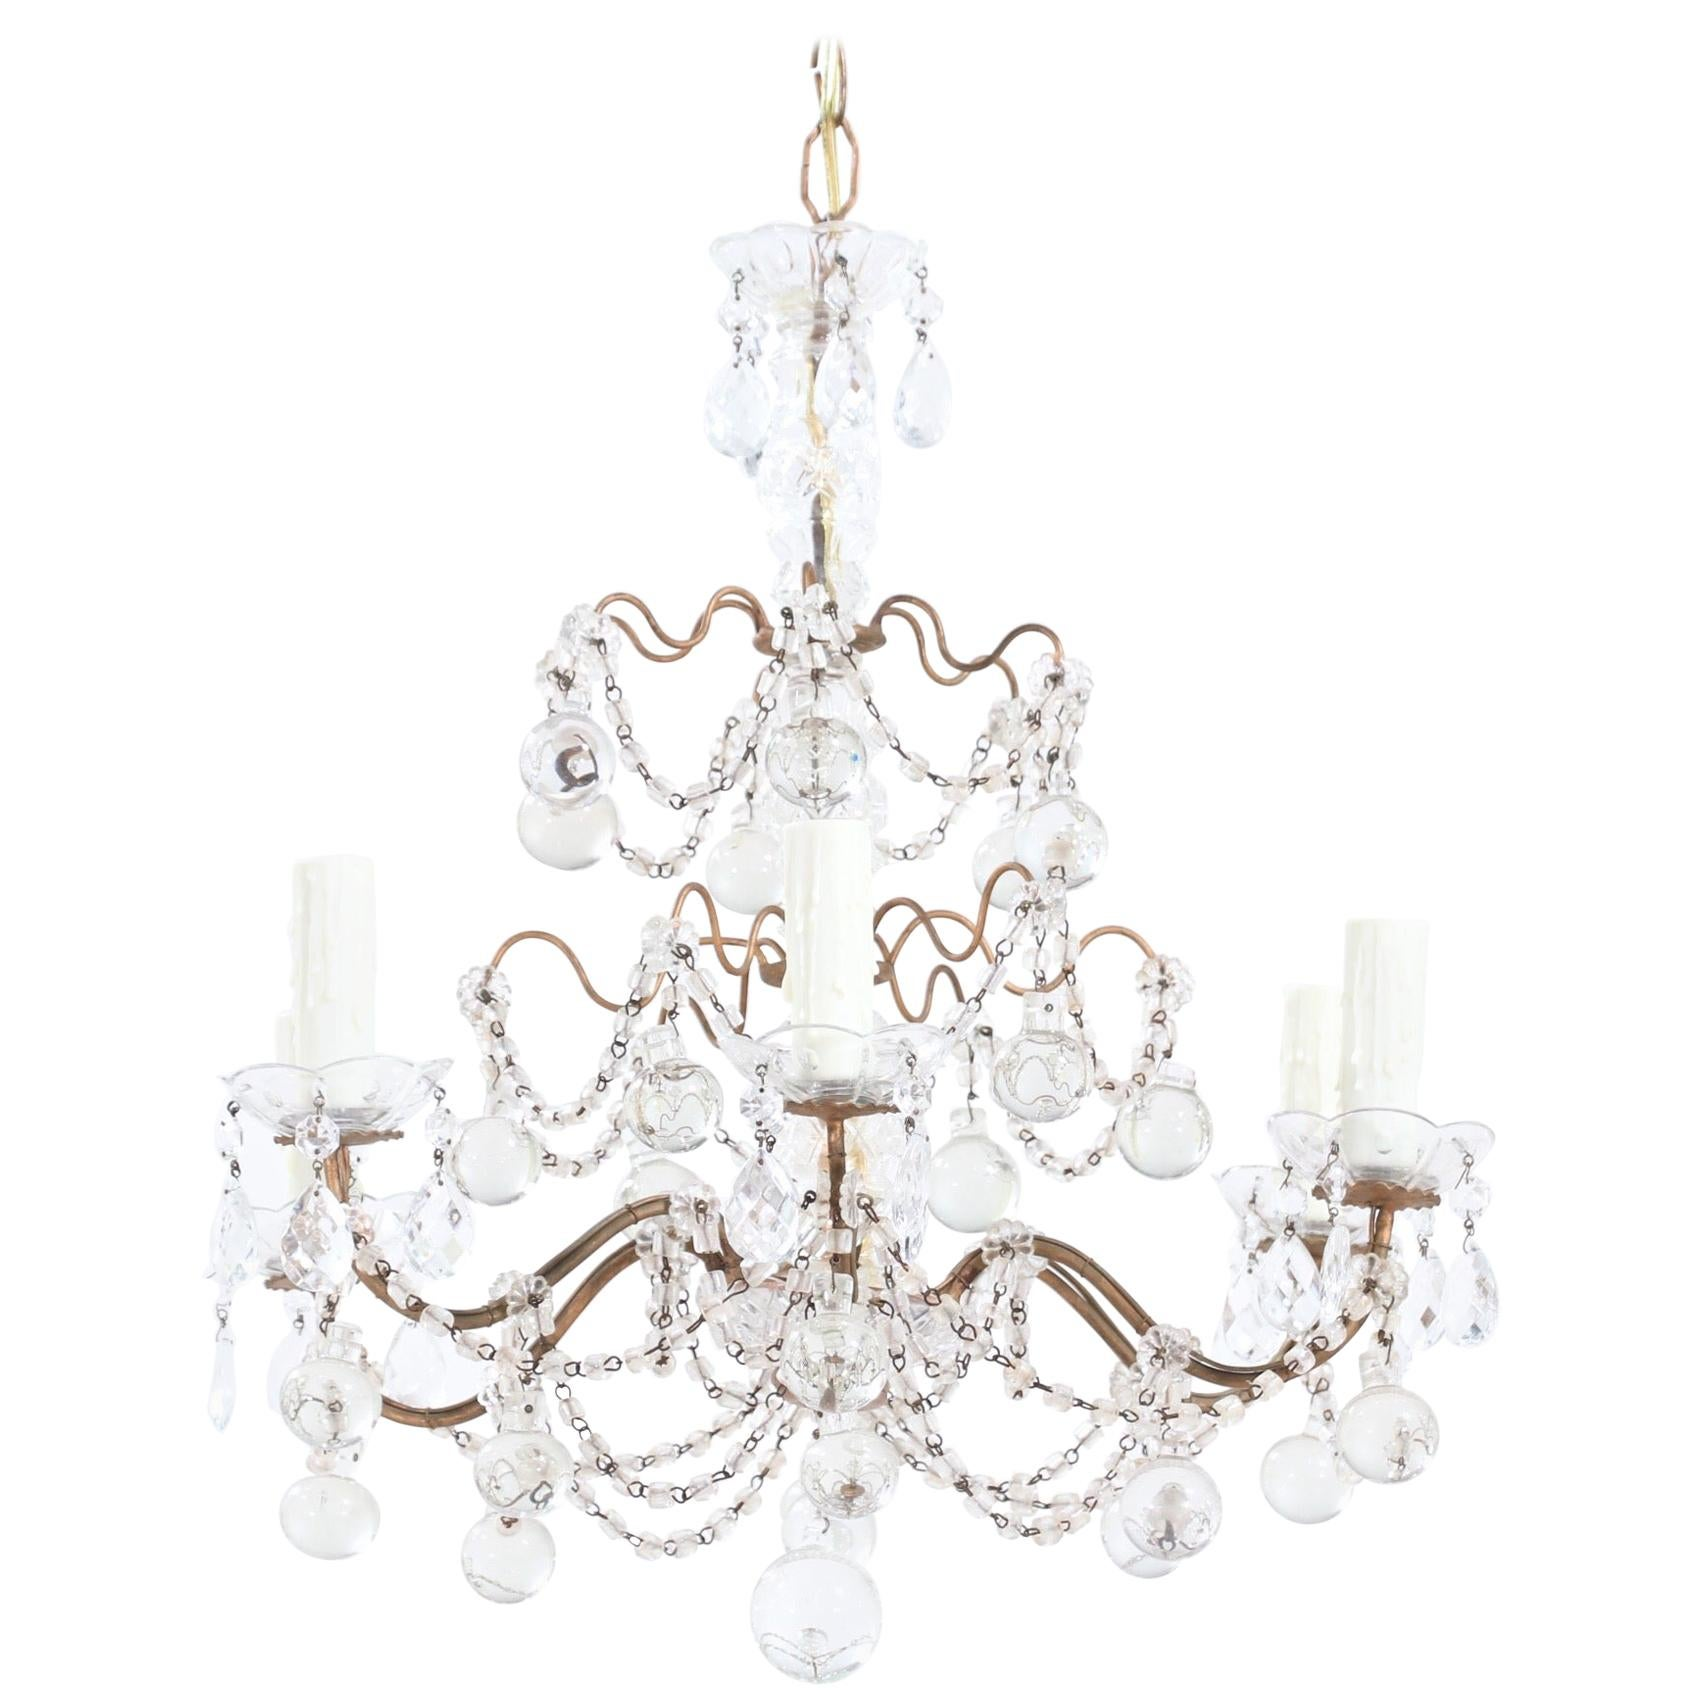 Italian Crystal Beaded Chandelier with Glass Ball Drops